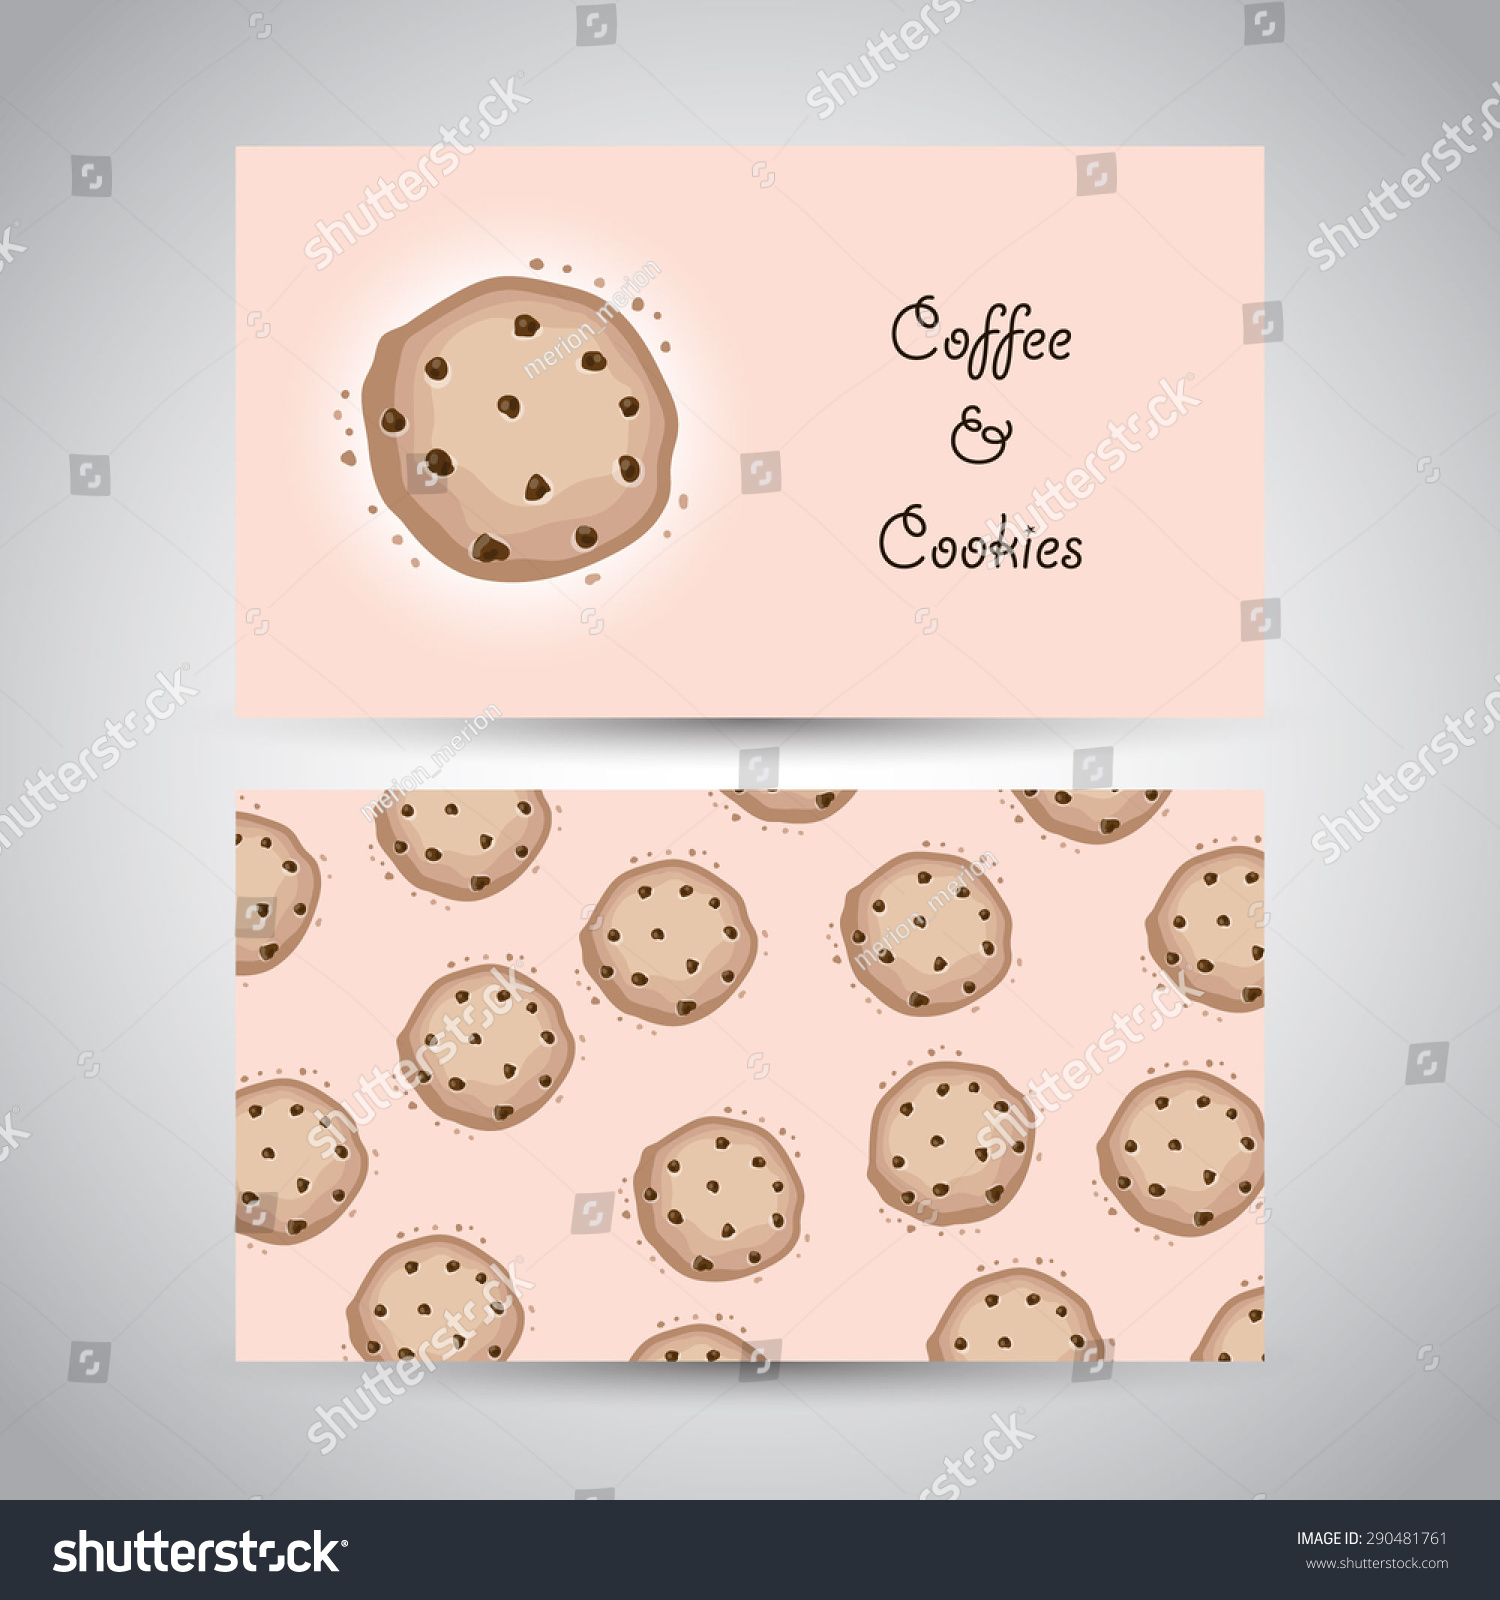 Two business cards cookies text coffee stock vector royalty free two business cards with cookies and text coffee and cookies vector illustration colourmoves